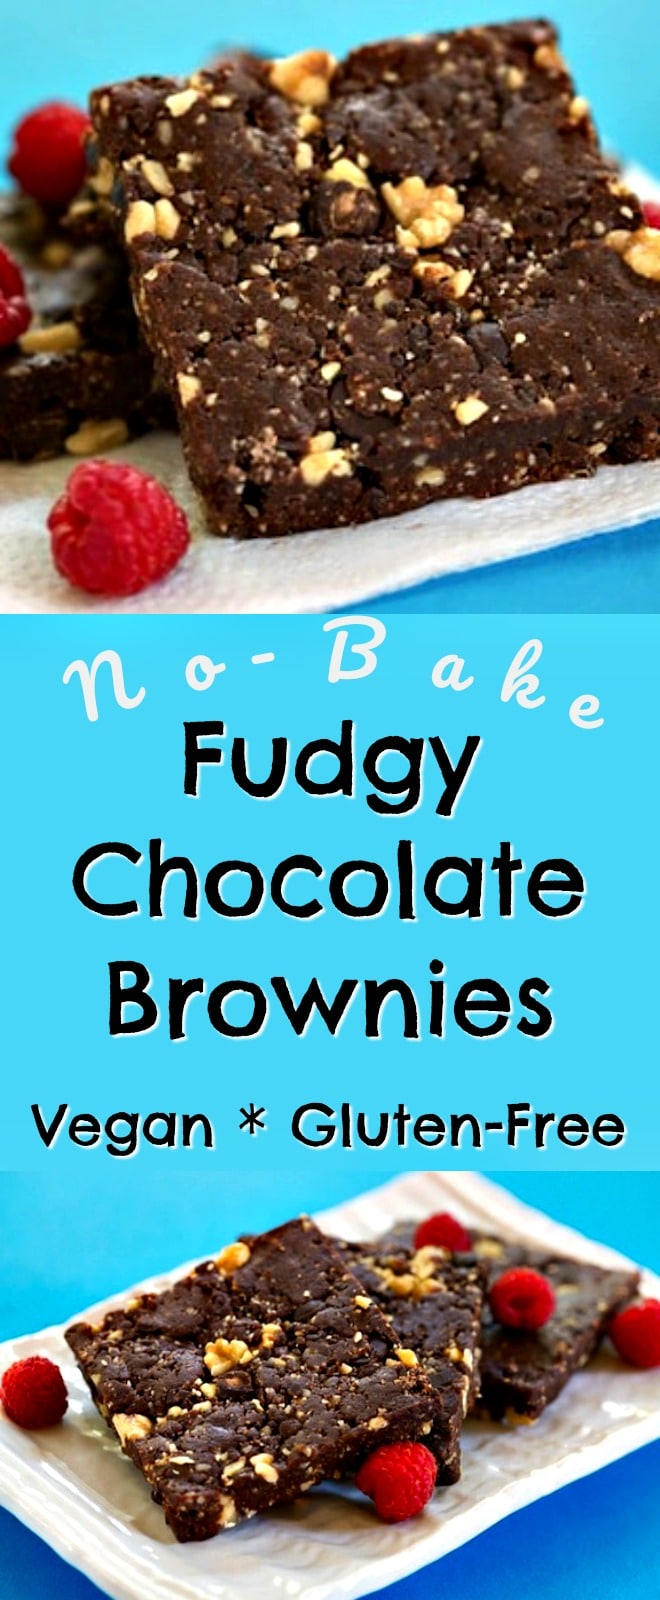 No-Bake Fudge Brownies that are vegan and gluten-free. These are great for a summer treat when it's too hot to bake.   Vegan brownies, paleo brownies, no-bake brownies, gluten free brownies, grain free brownies.